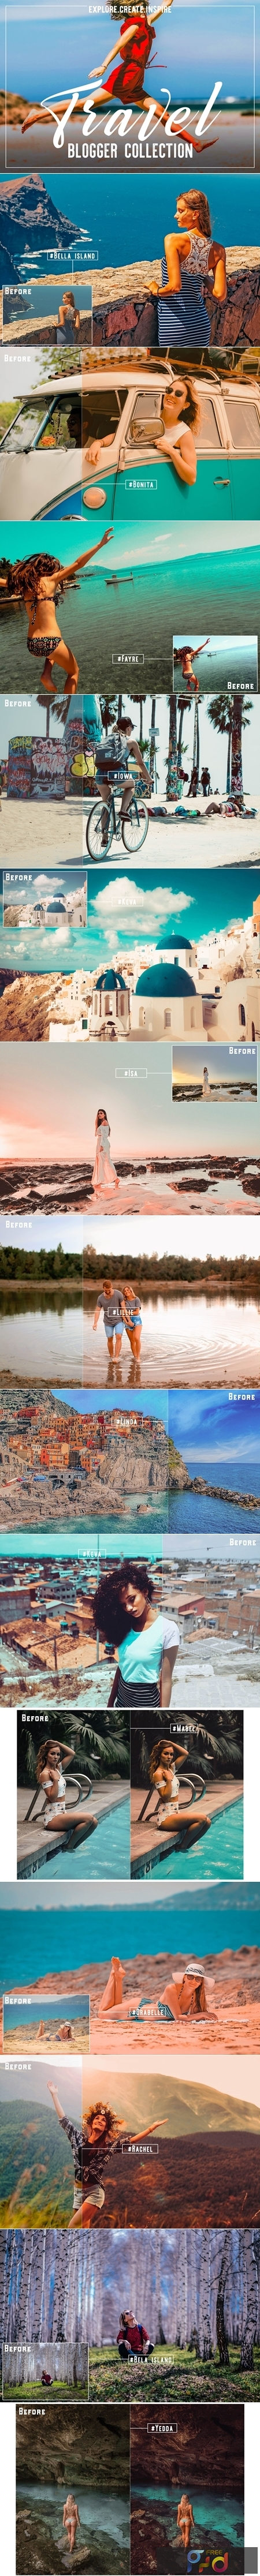 130+ Travel Blogger Lr//Acr Presets 3043539 1